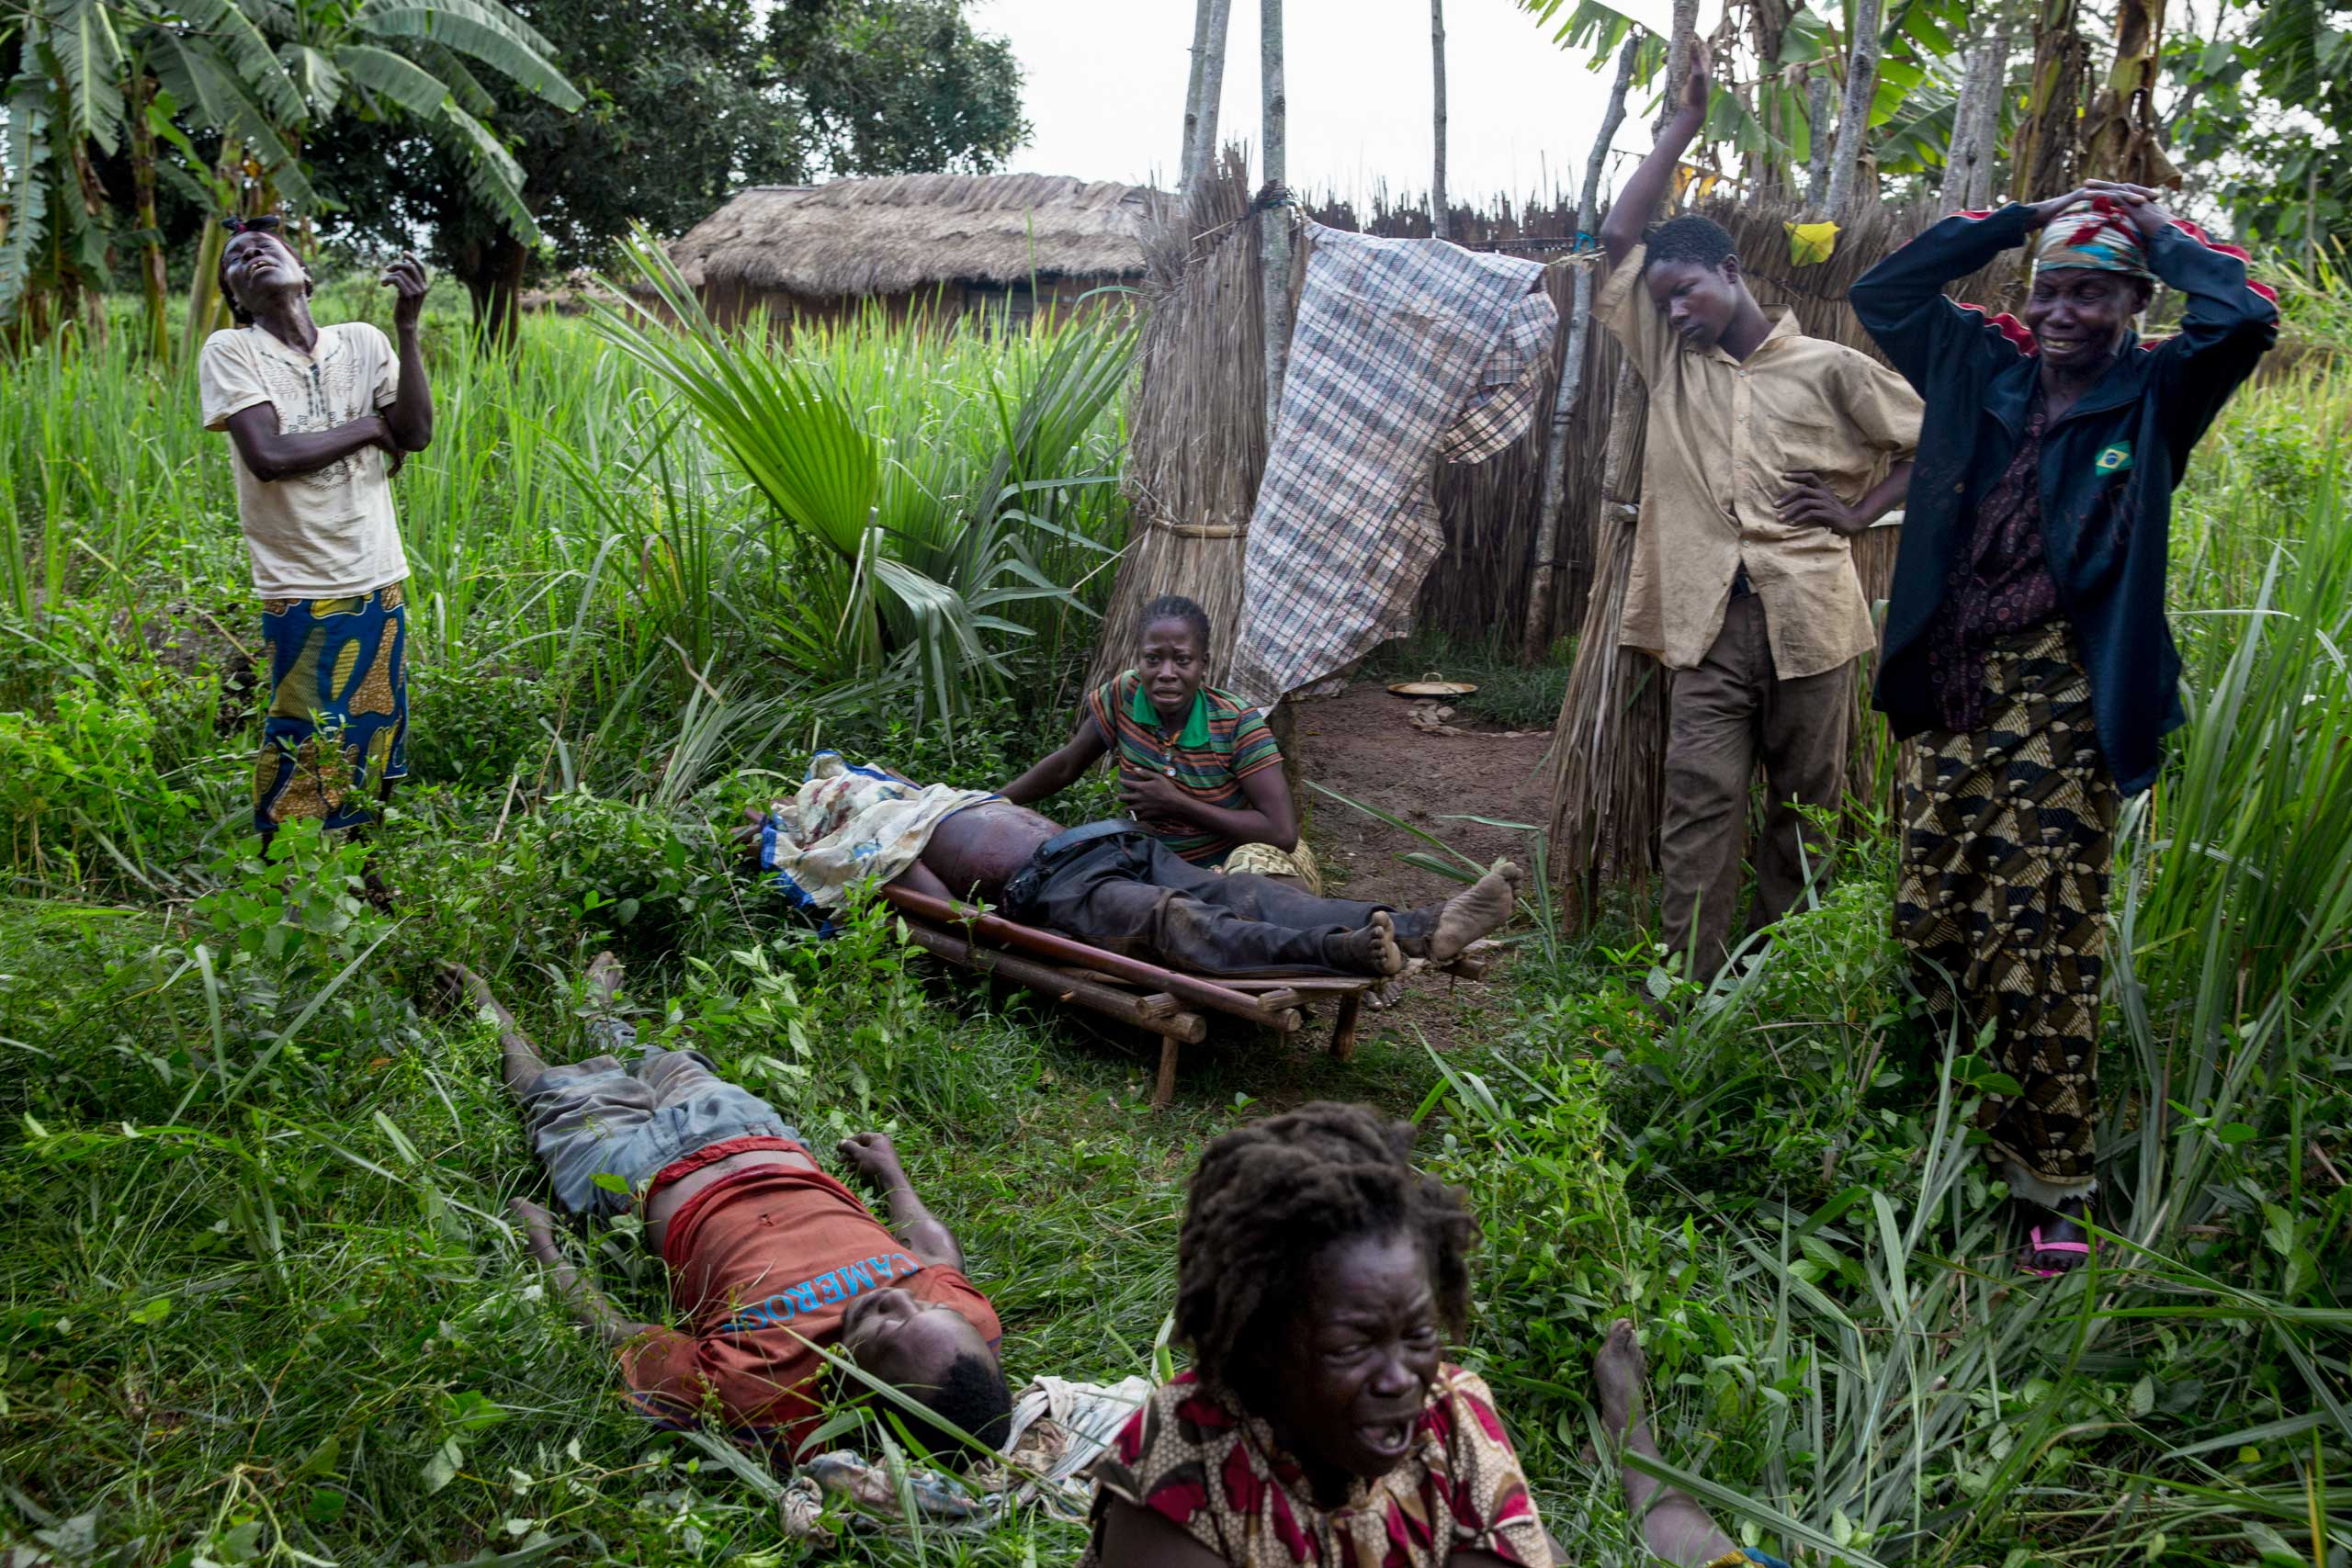 """Relatives mourn the death of two men and one woman who had just been slaughtered amid accusations they were anti-balaka. The woman was killed as  collateral damage"""" according to a Séléka colonel who admitted the killing. Gulinga, Central African Republic. April 14, 2014."""